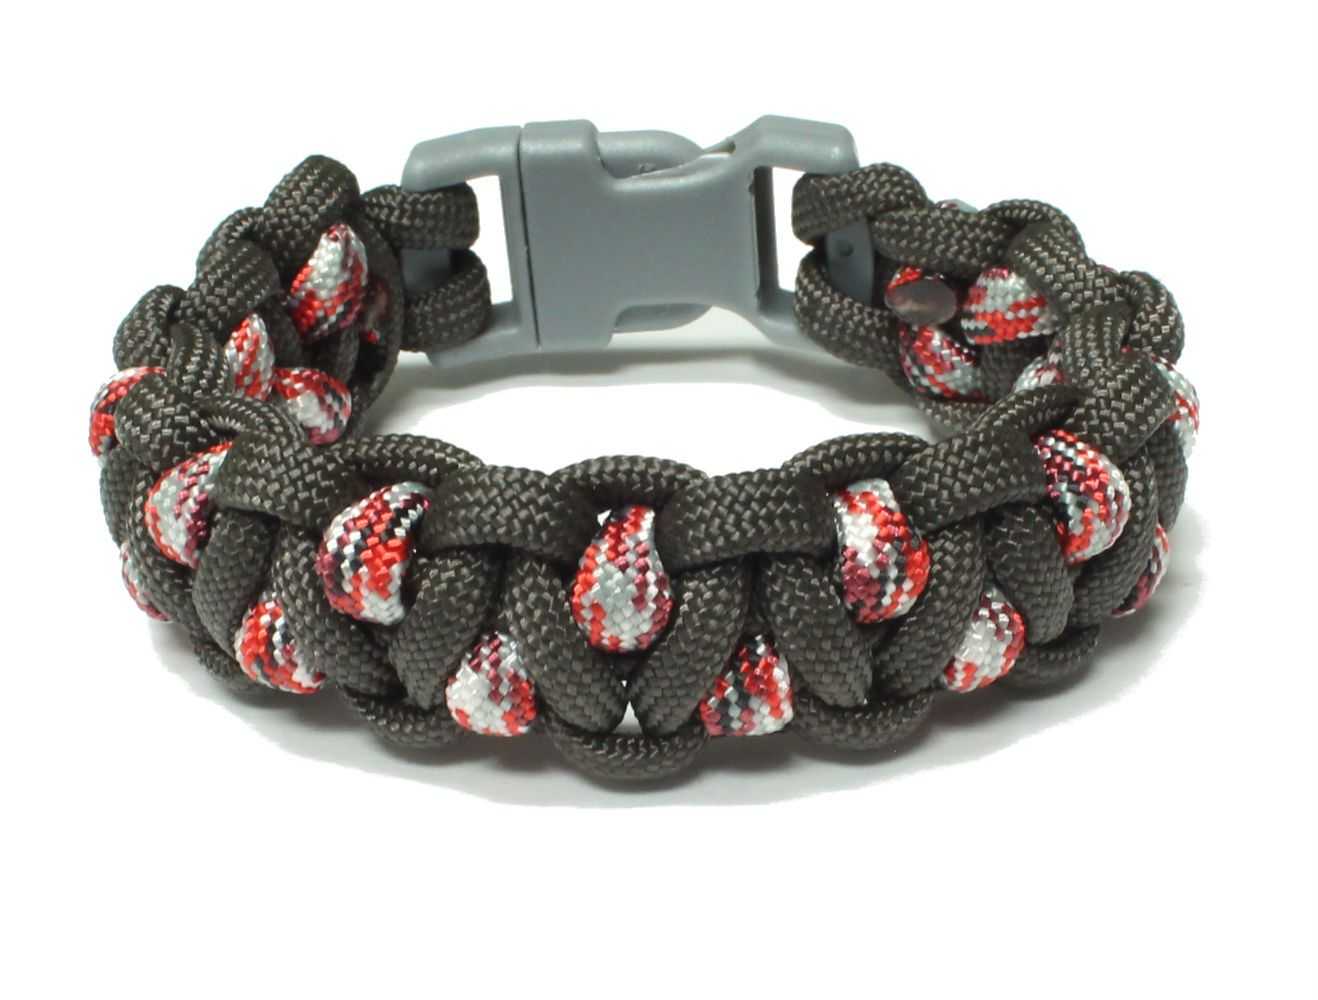 Paracord Printable Pdf Instructions View Them Online Or Print